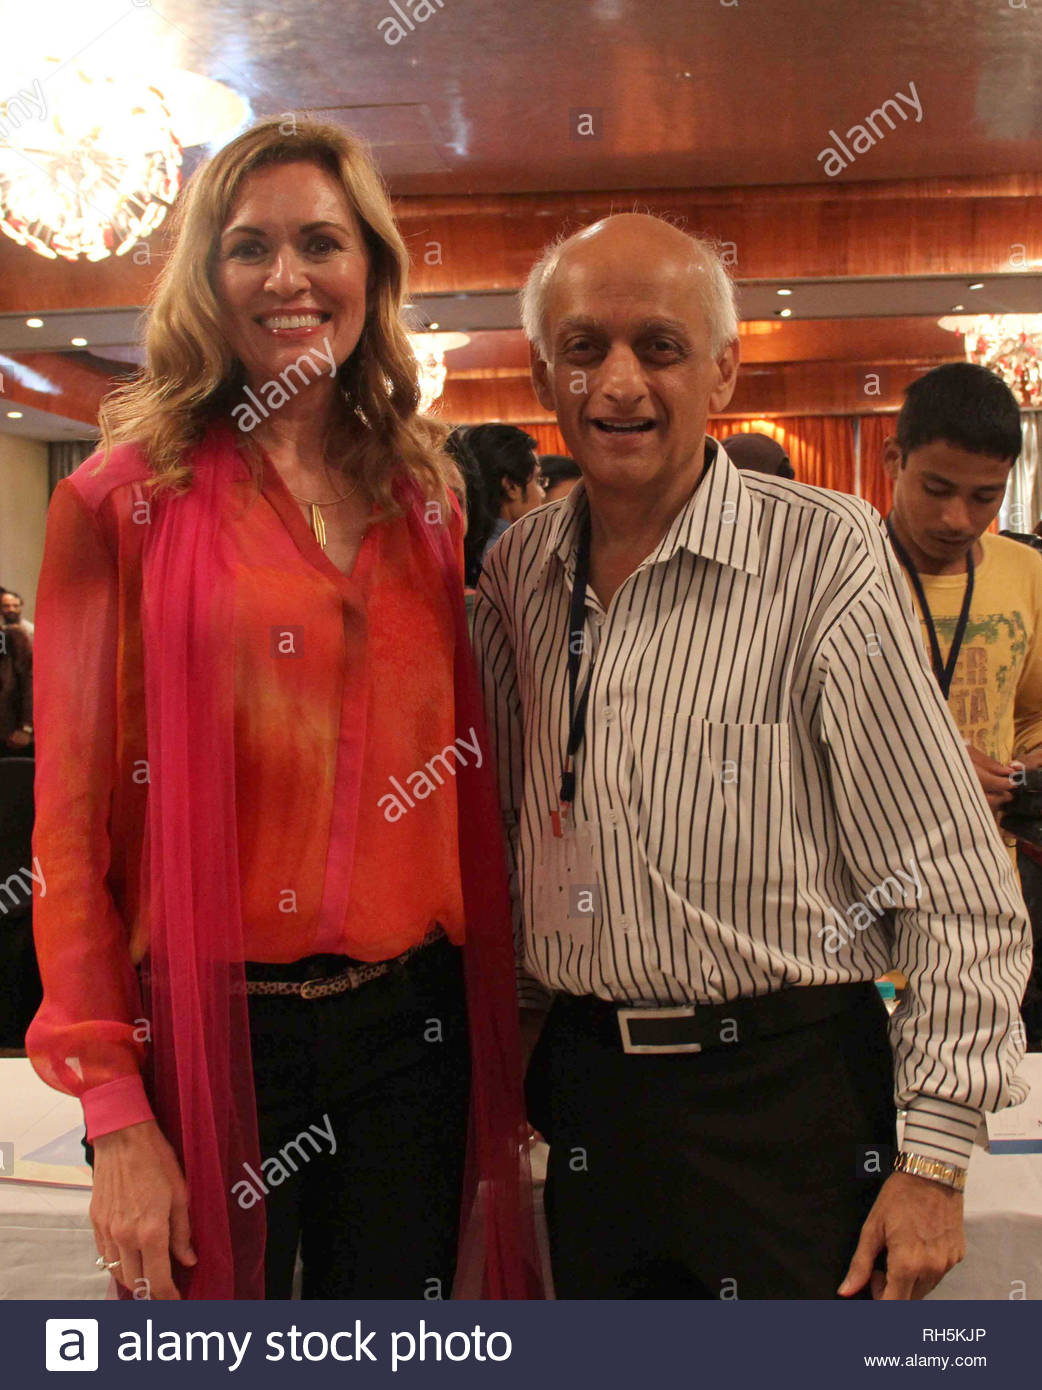 Sandra de Castro Buffington, Director, Health & Society (HH&S) with Mukesh Bhatt Bollywood filmmaker during a panel discussion on 'Building Bridges between creative communities & and priorities of our time' in Mumbai, India on July 18, 2013. (Amol Kamble) - Stock Image